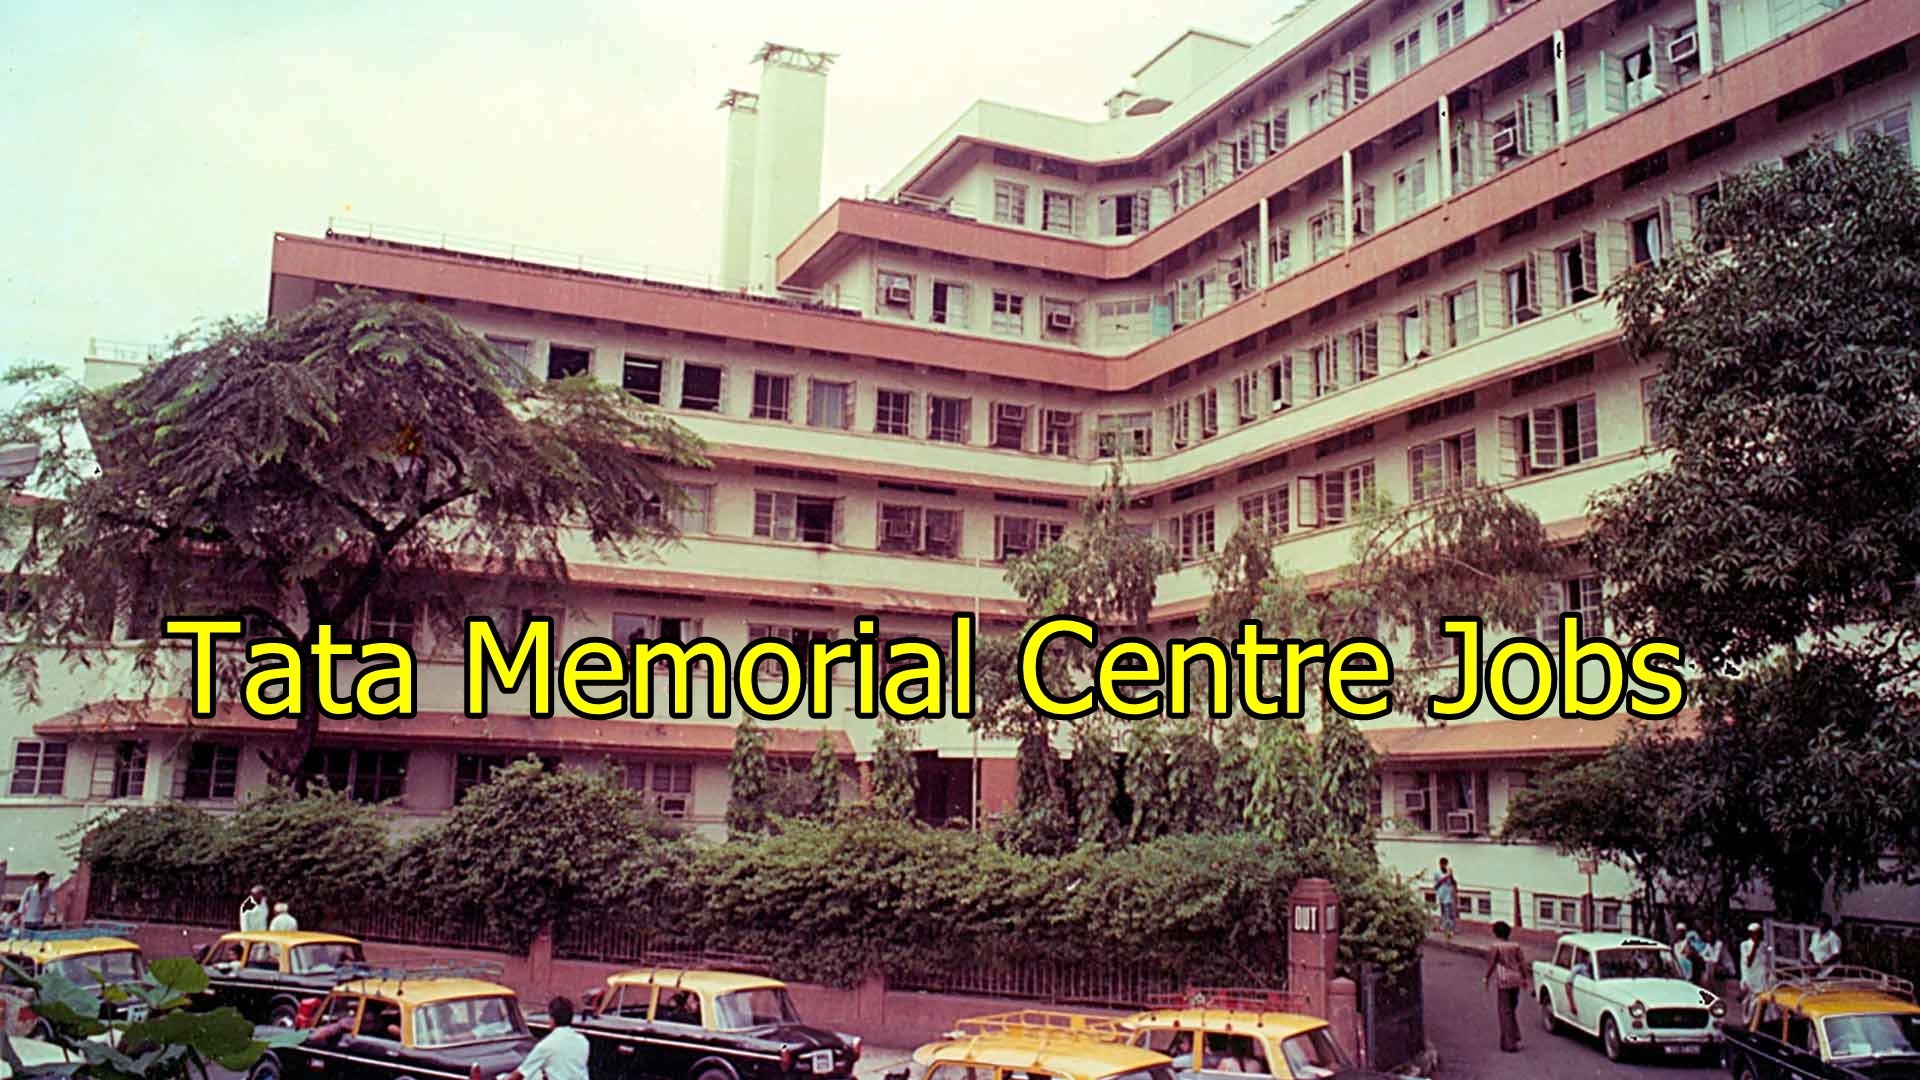 Tata Memorial Centre Jobs